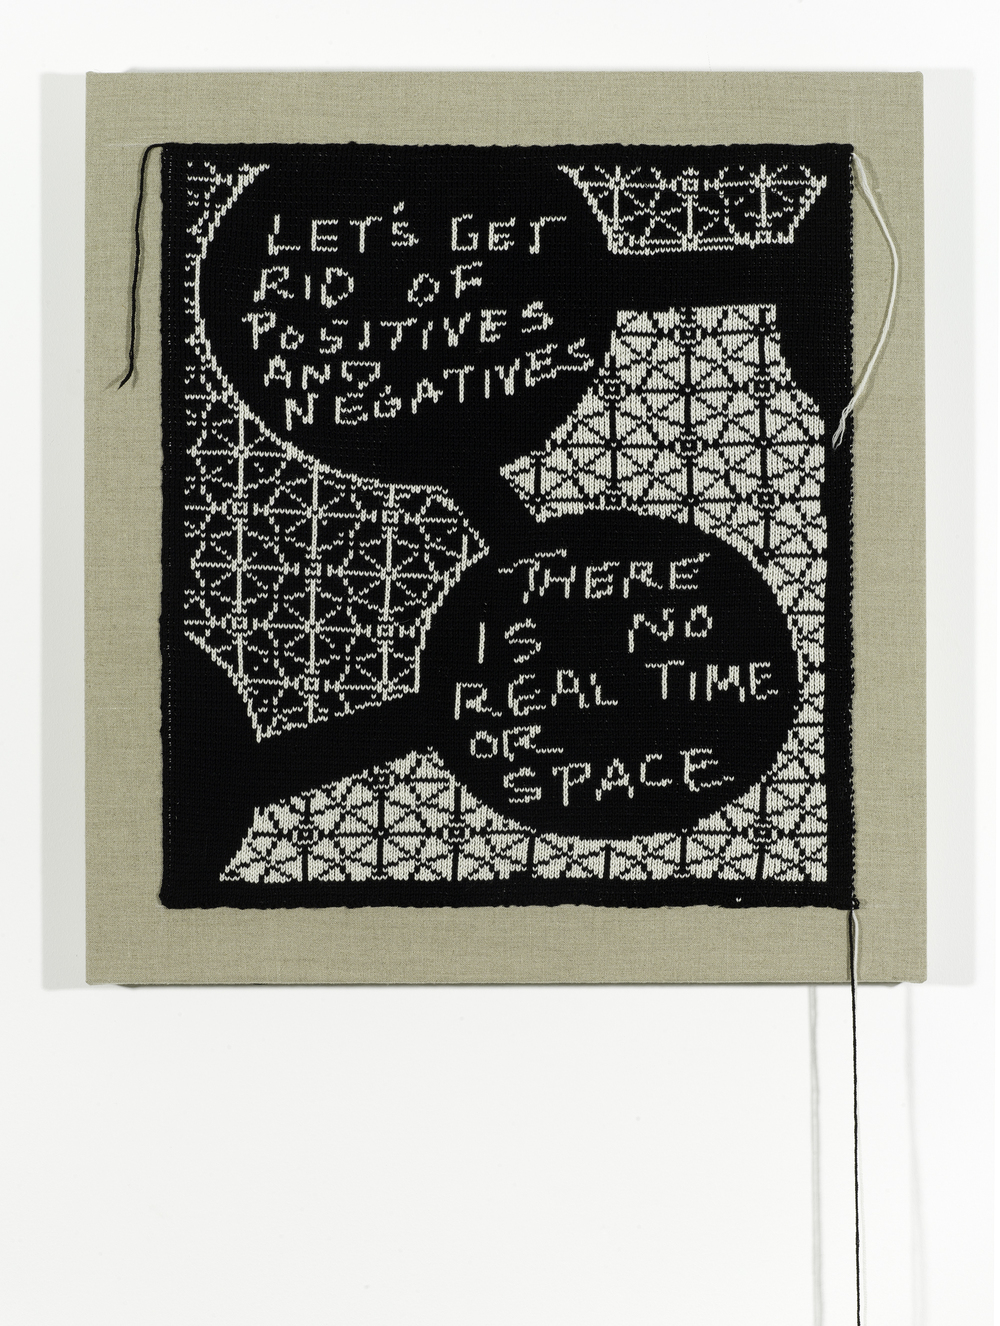 Let's Get Rid of Positives and Negatives (Negative), 2014